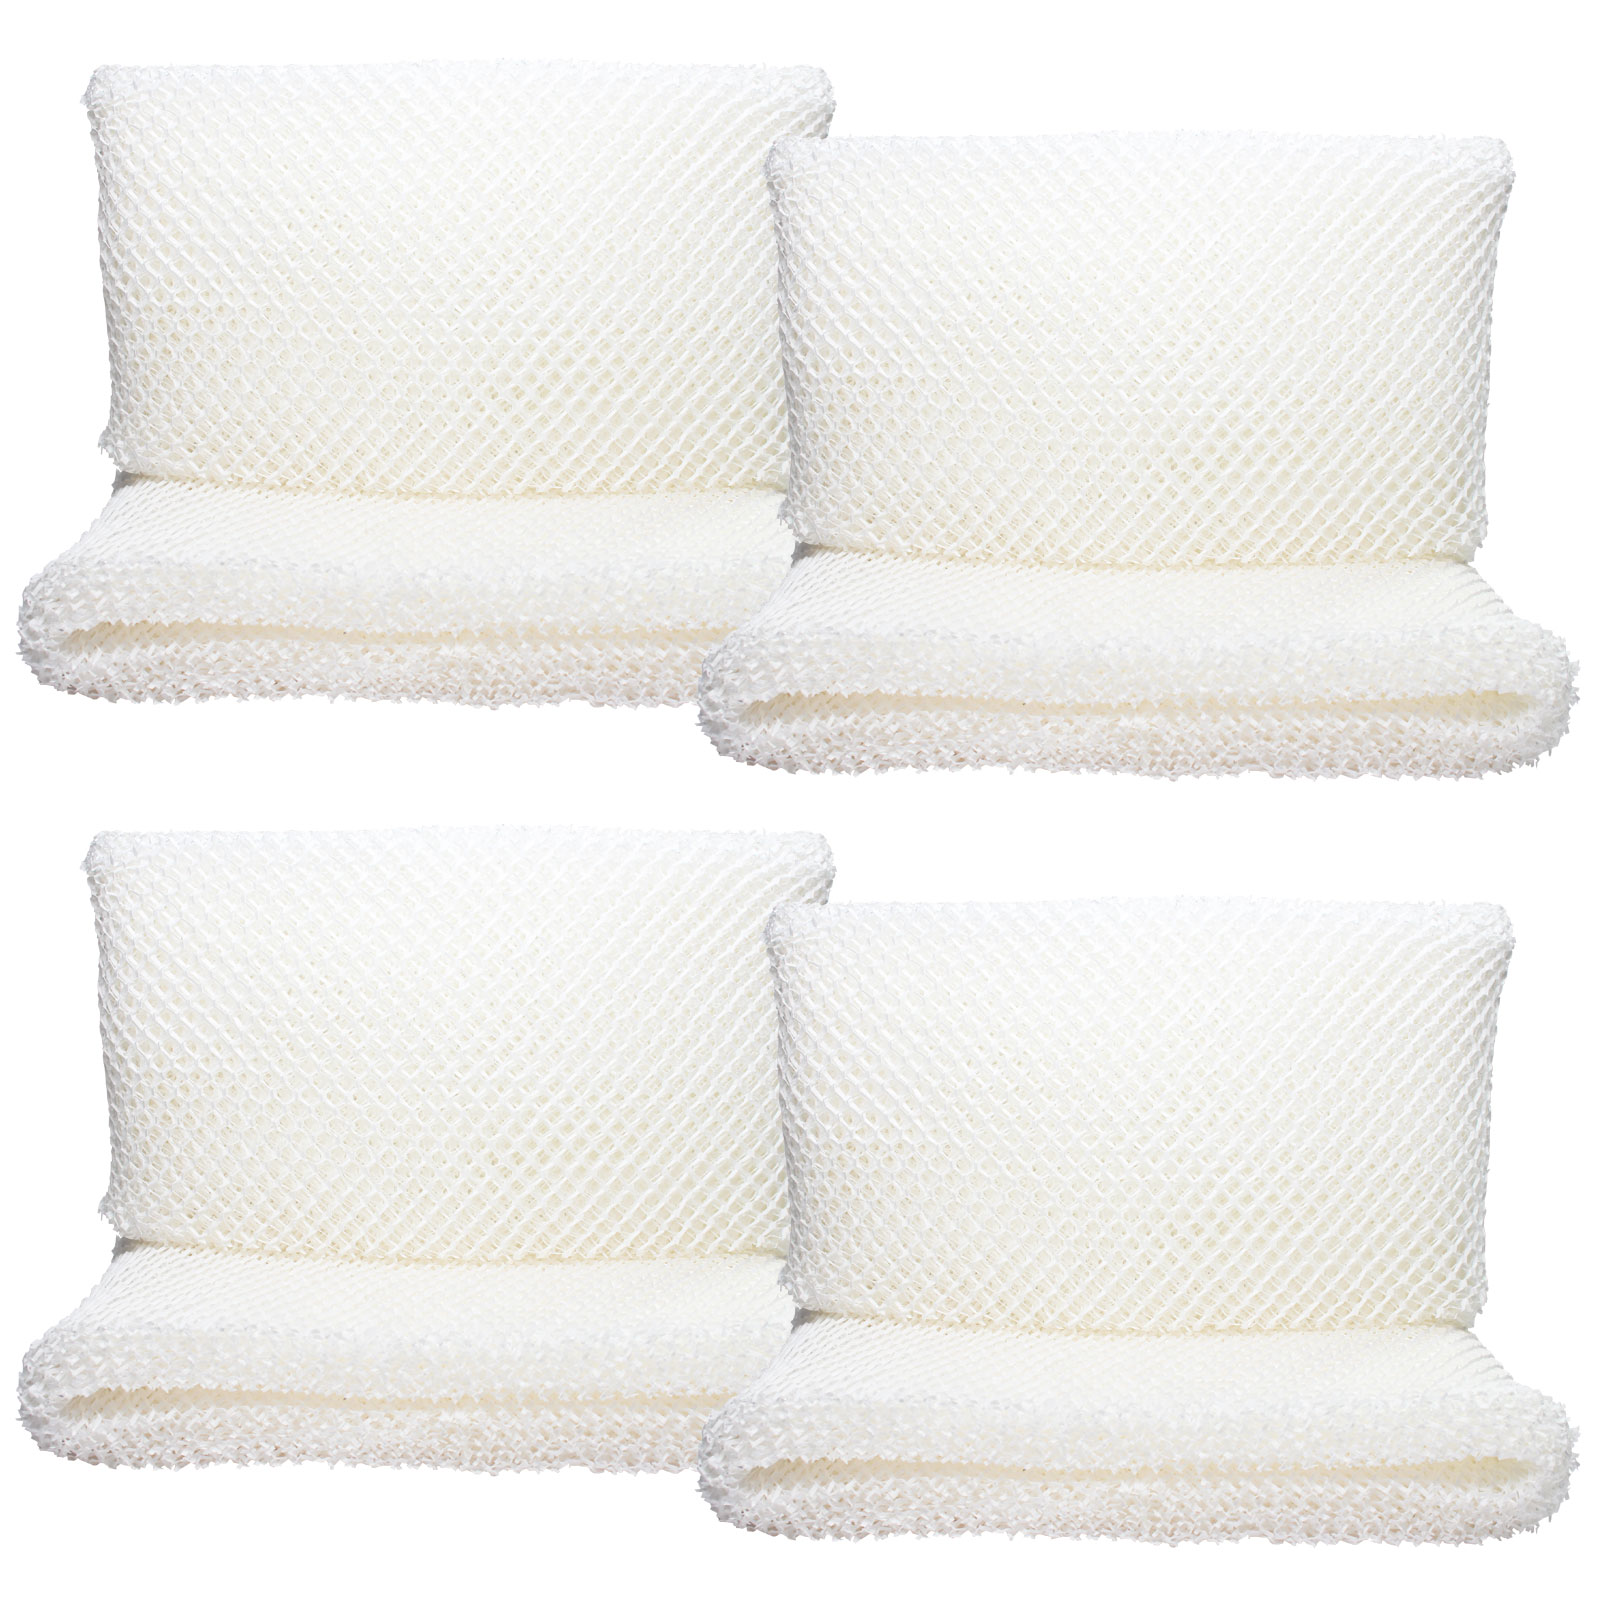 UpStart 8-Pack Replacement Holmes HF221 Humidifier Filter...